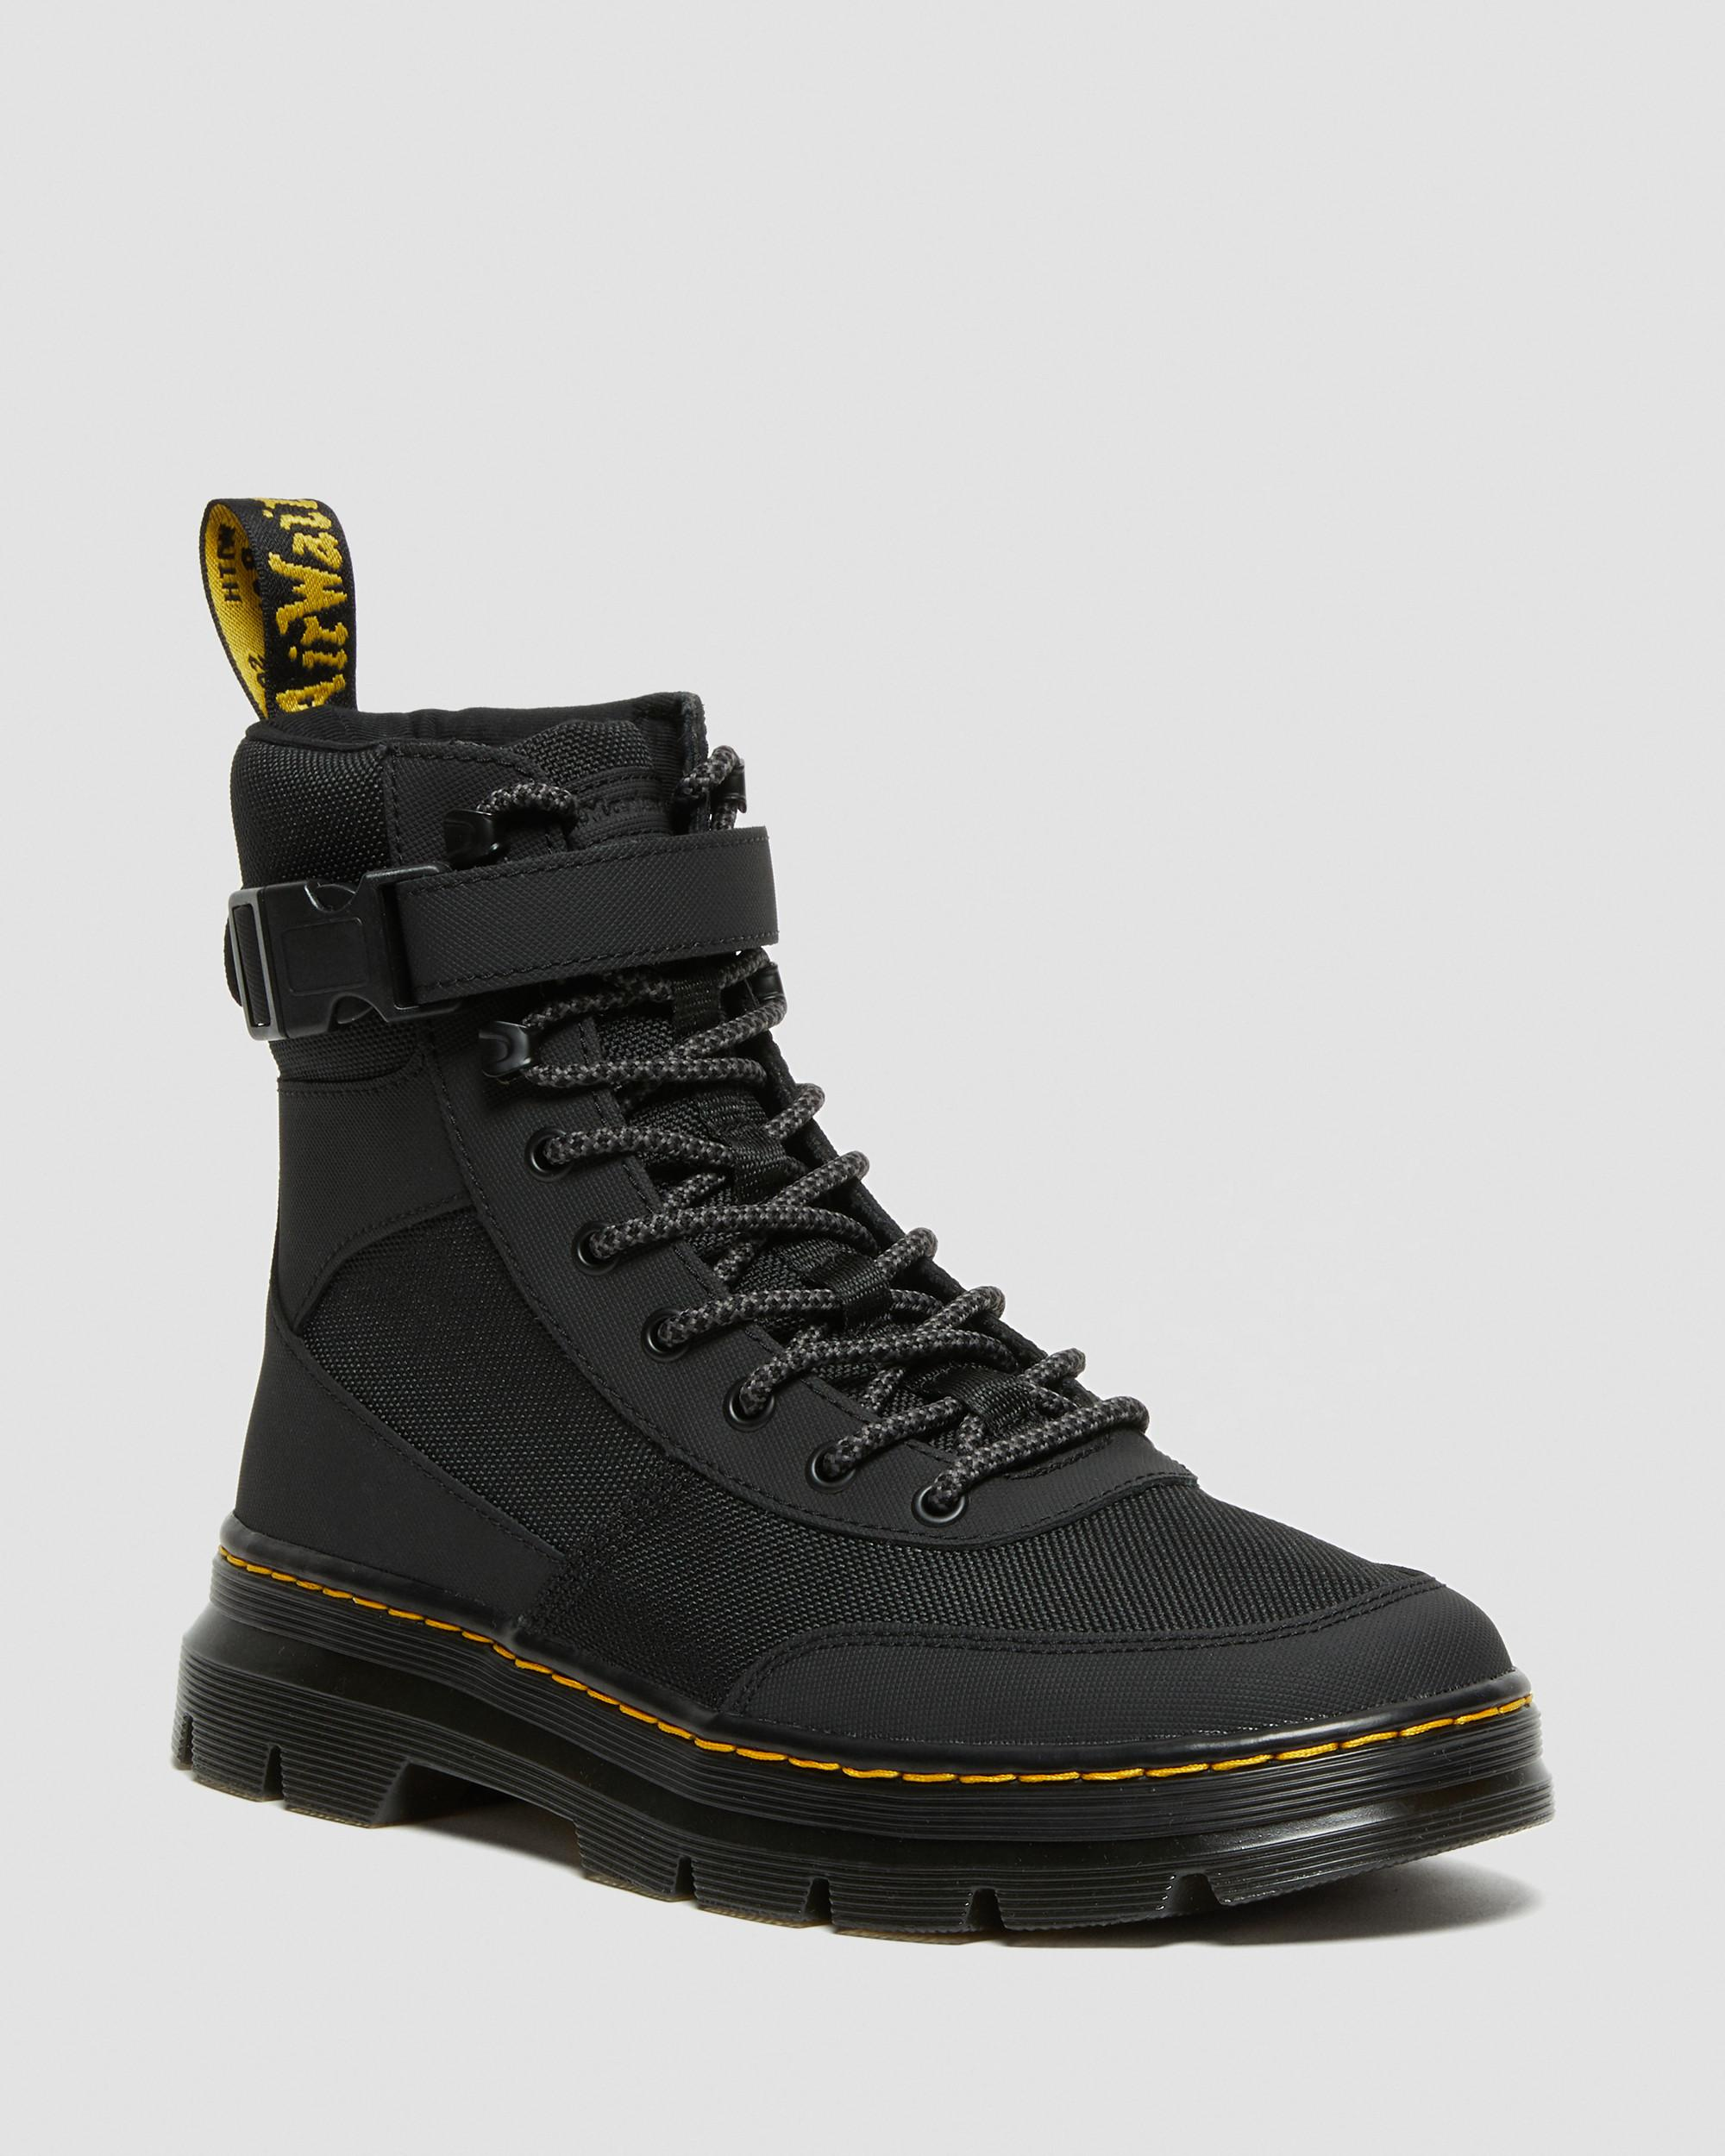 Mens Motorcycle Classic Faux Leather Split Lace Up Sneakers Hiking Martin Boots